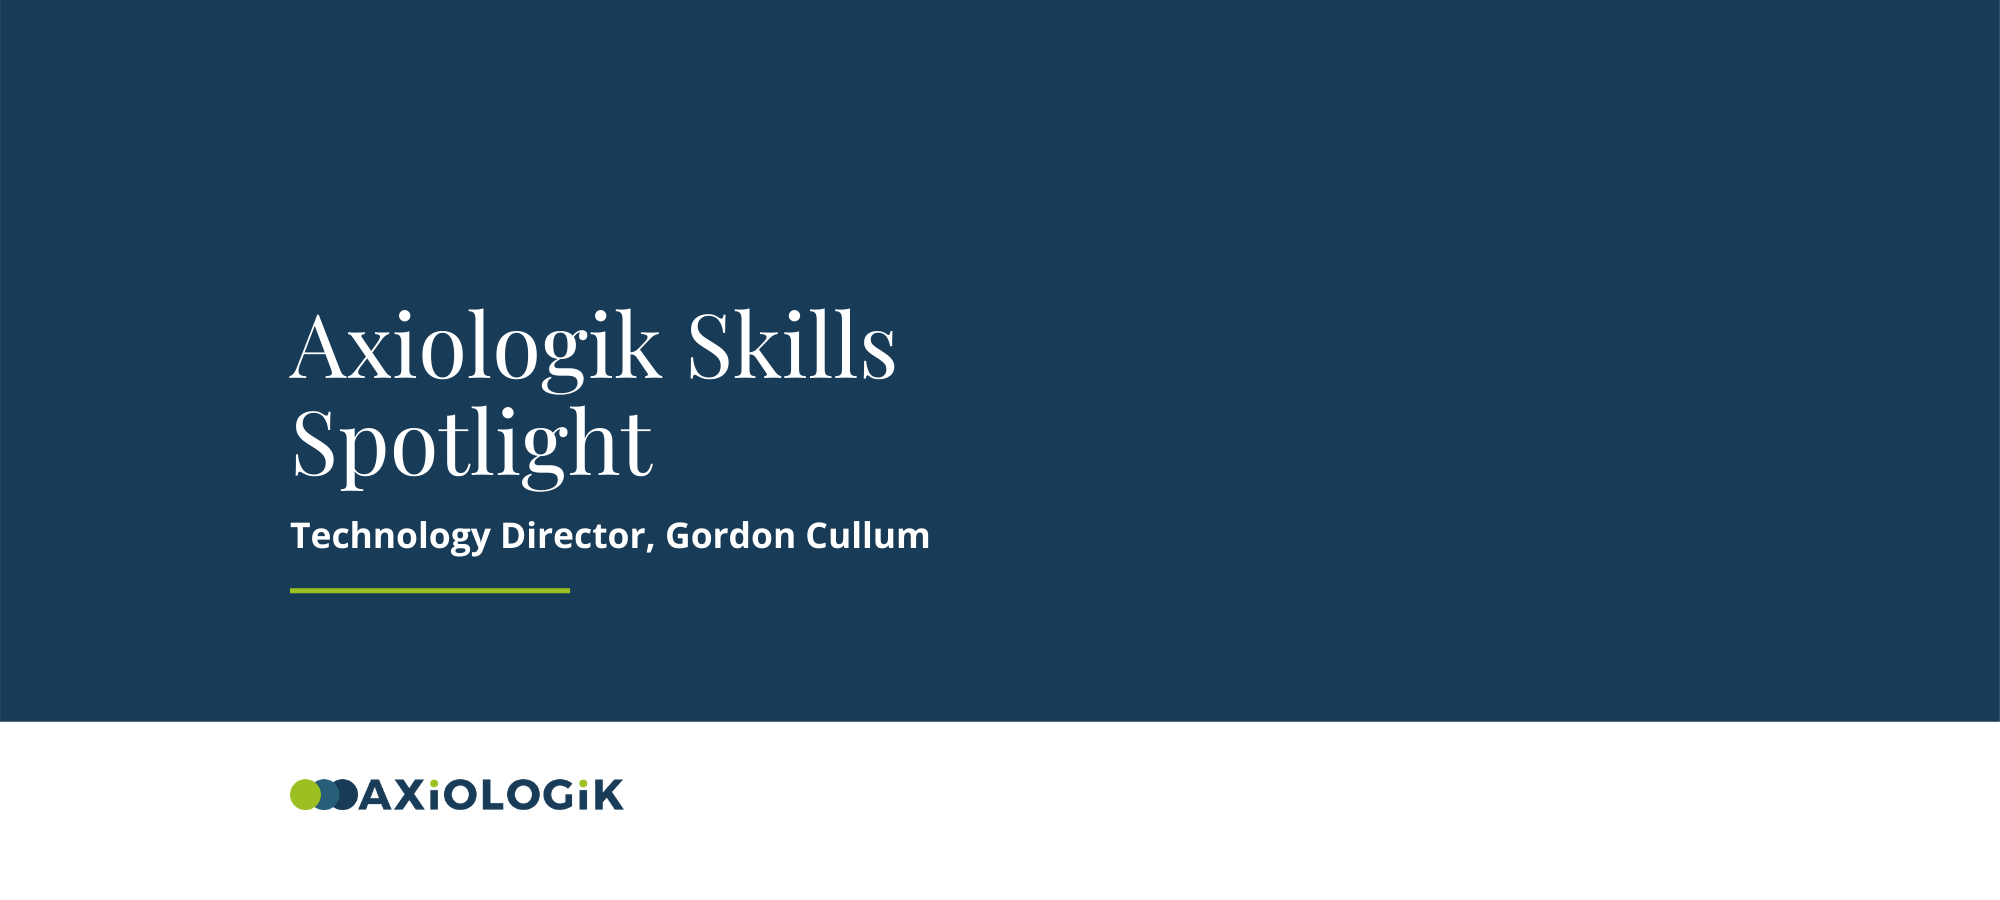 Axiologik Skills Spotlight: Gordon Cullum, Technology Director